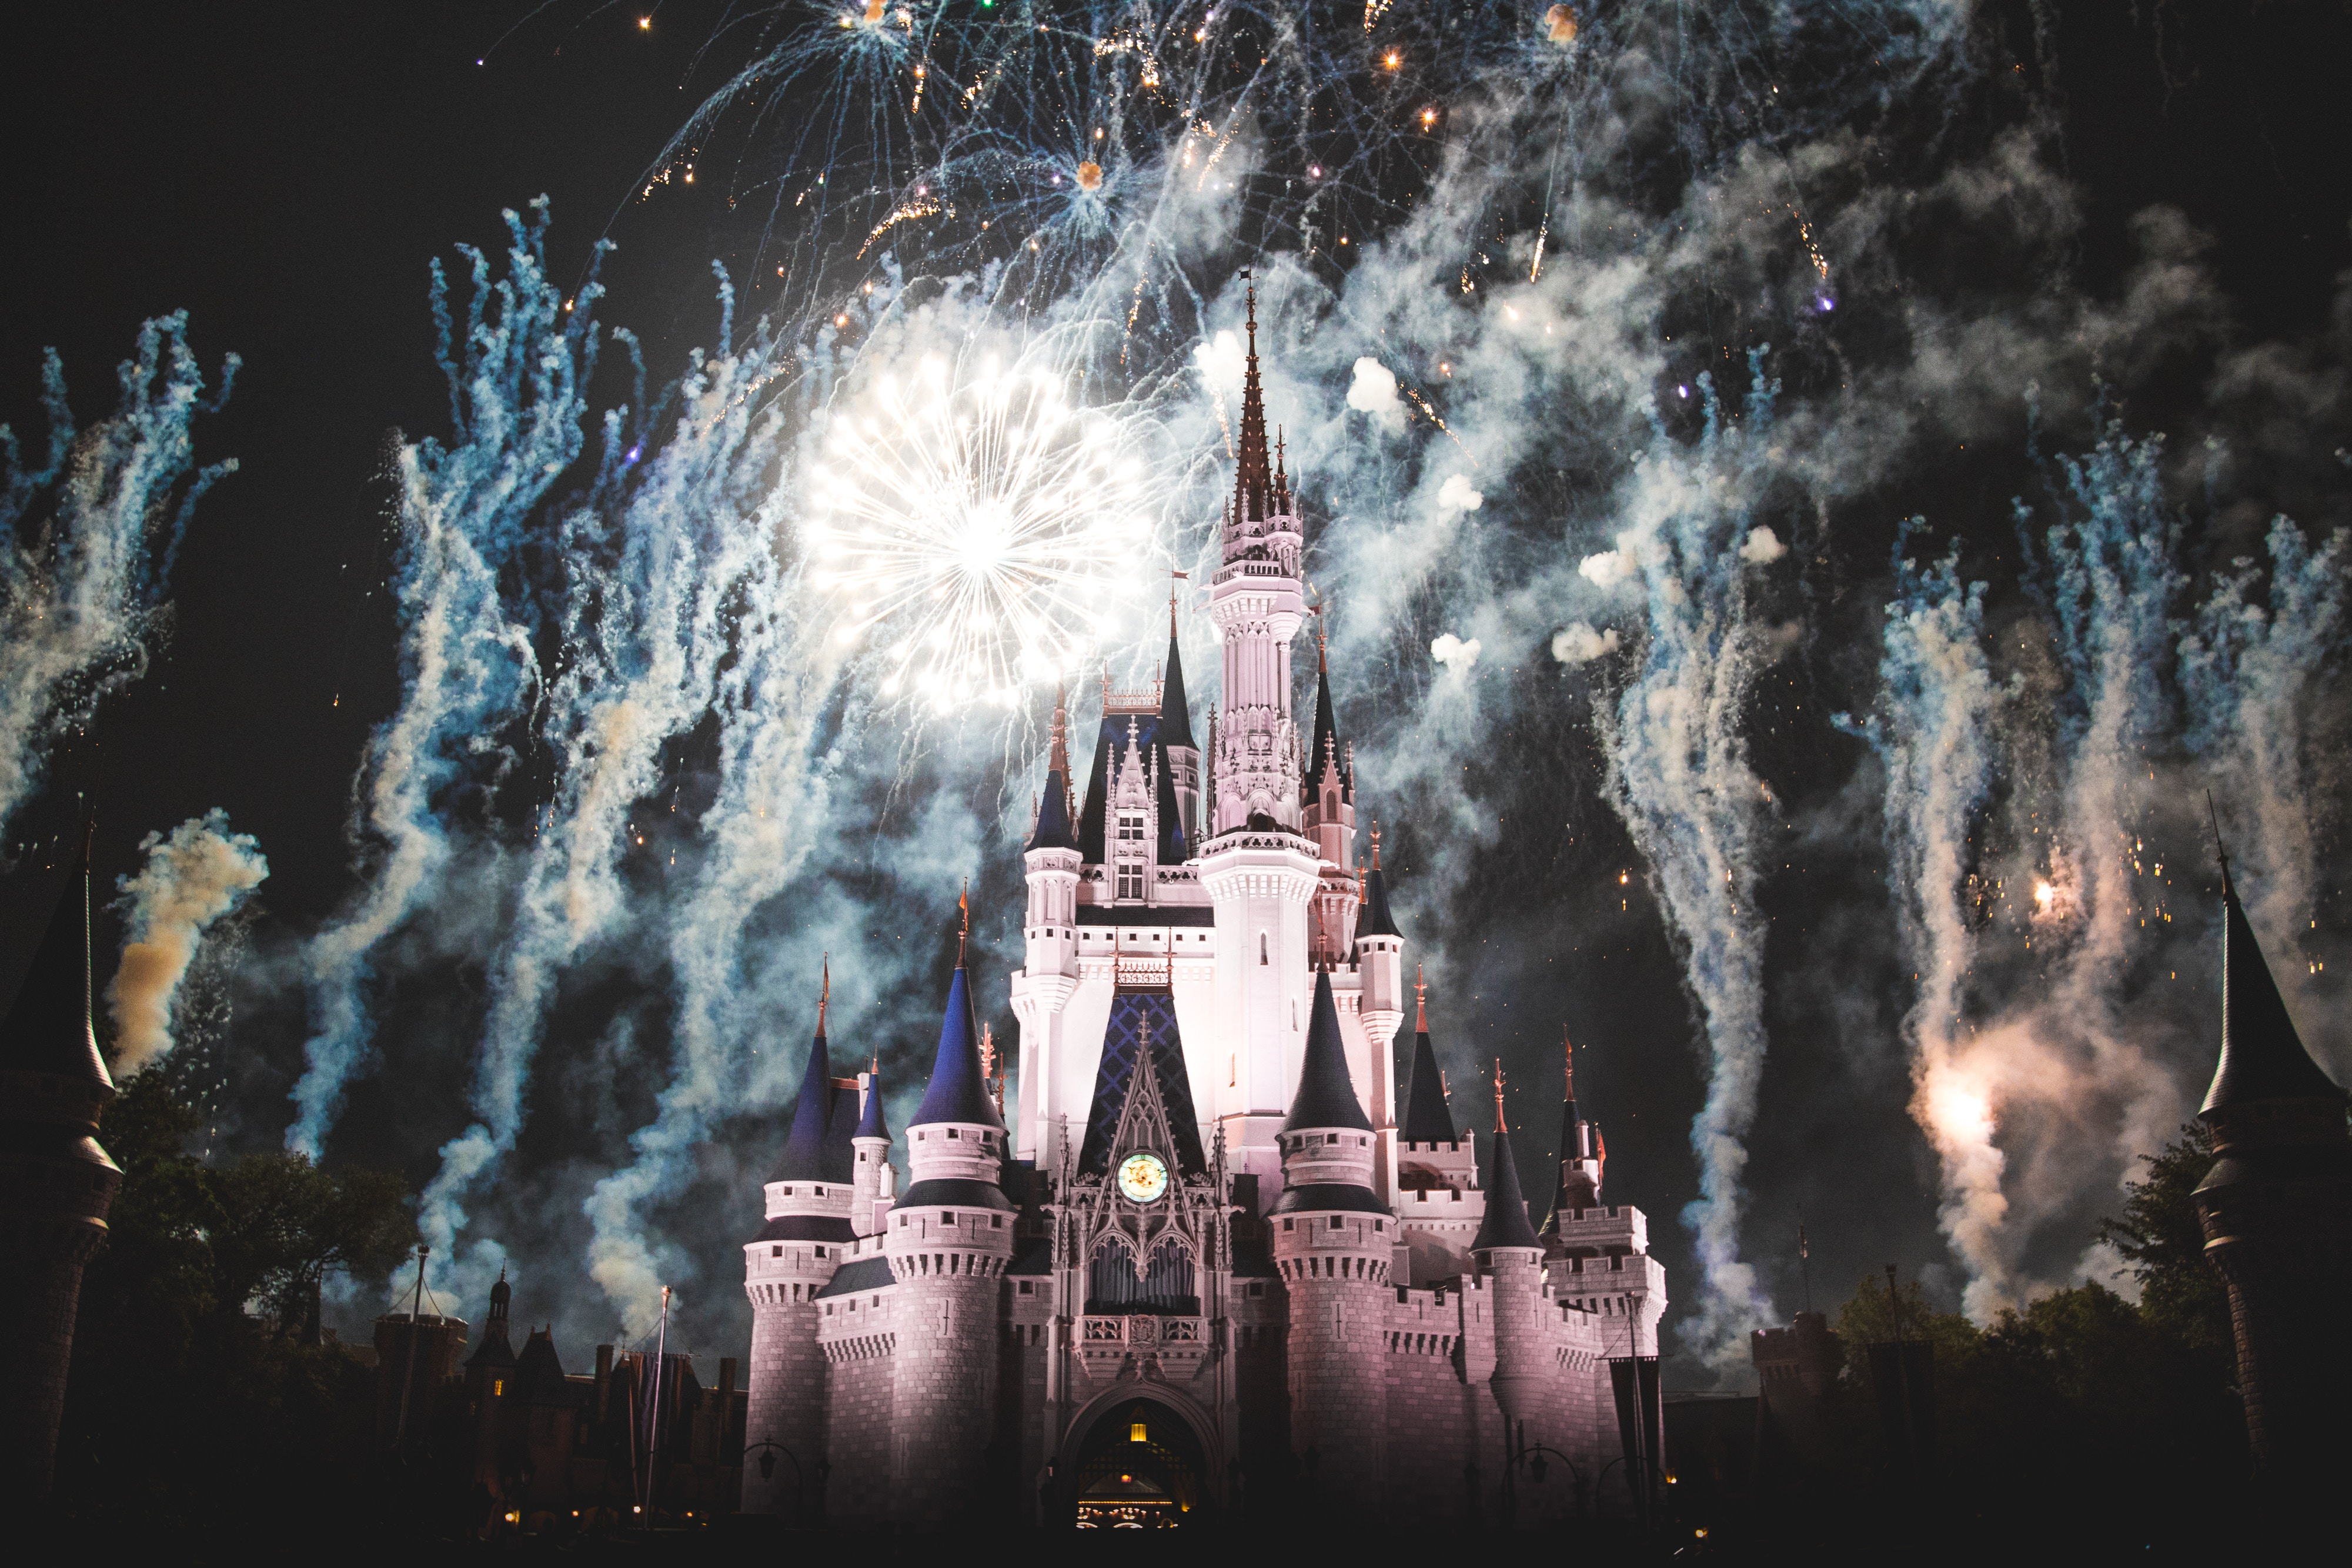 Disney Castle Christmas Svg.Wishes A Magical Gathering Of Disney Dreams Wikipedia